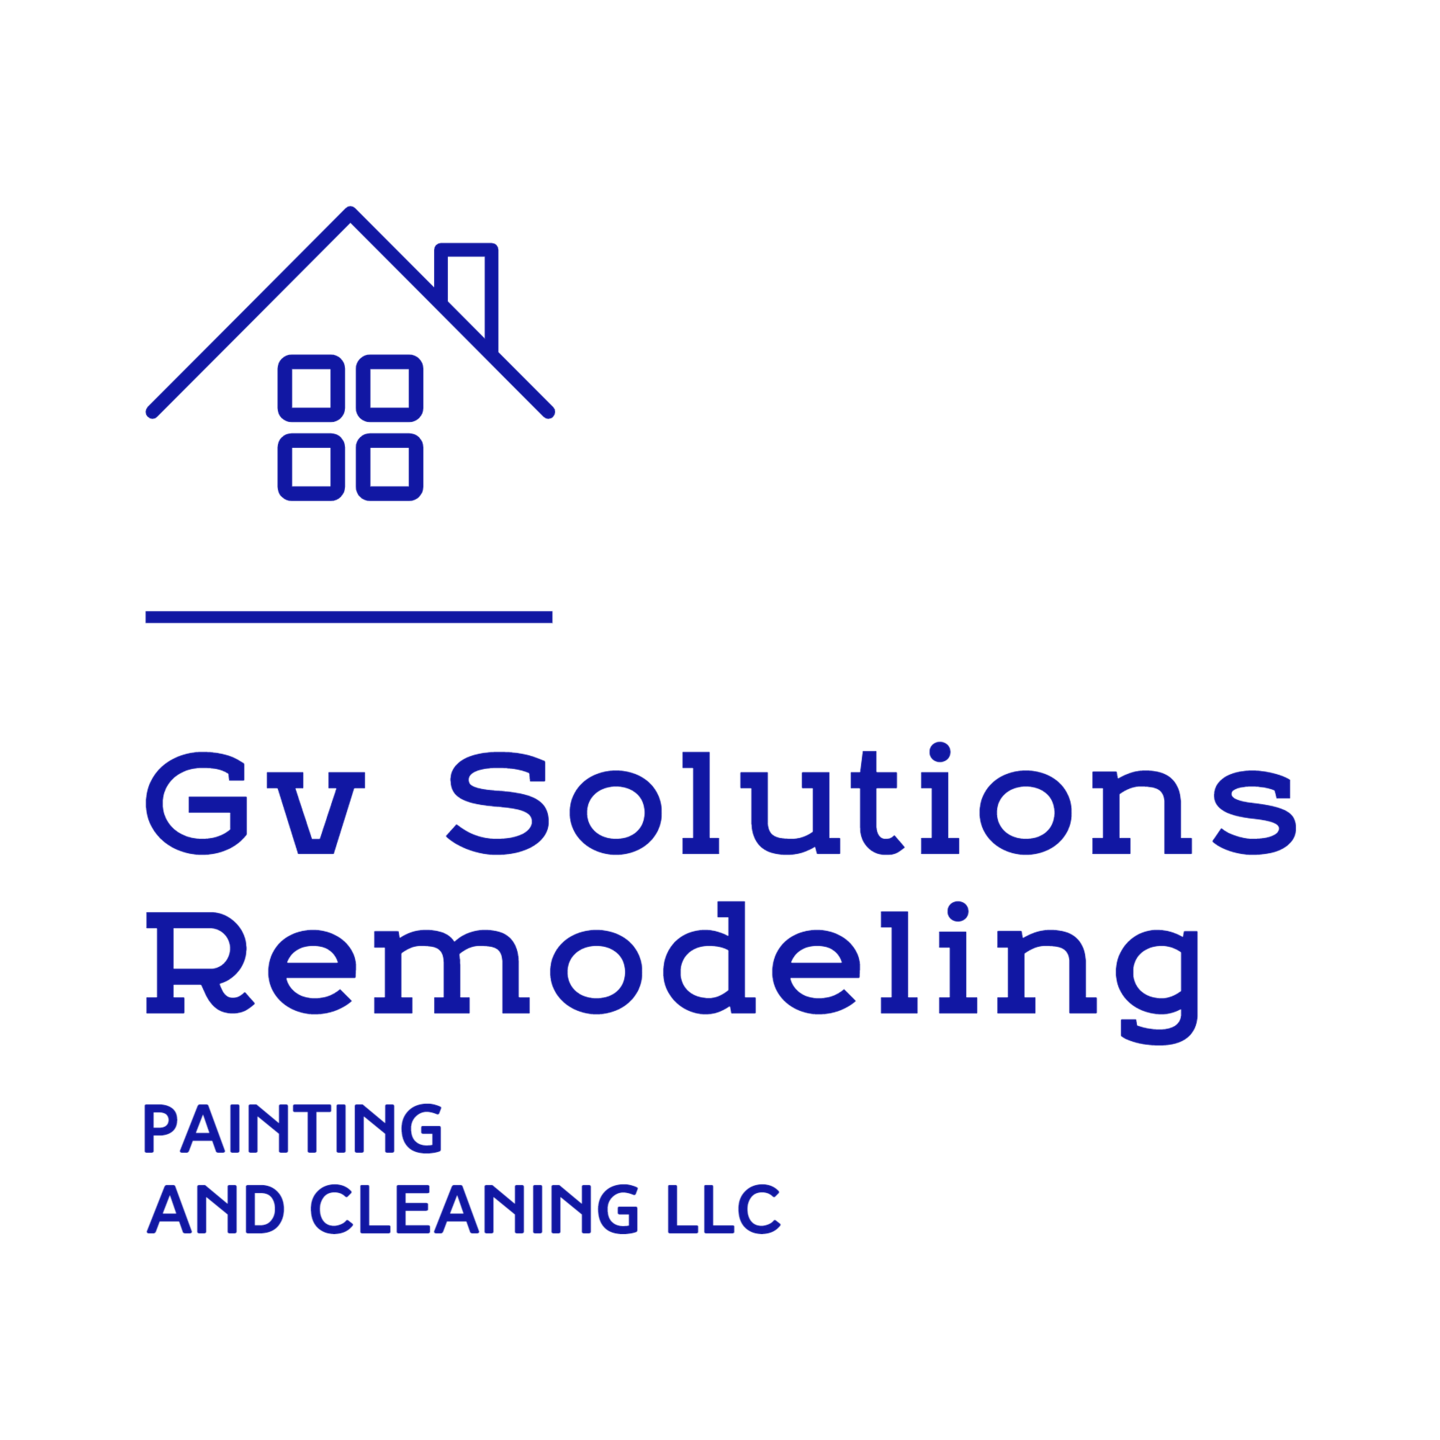 GV SOLUTIONS PAINTING AND CLEANING LLC